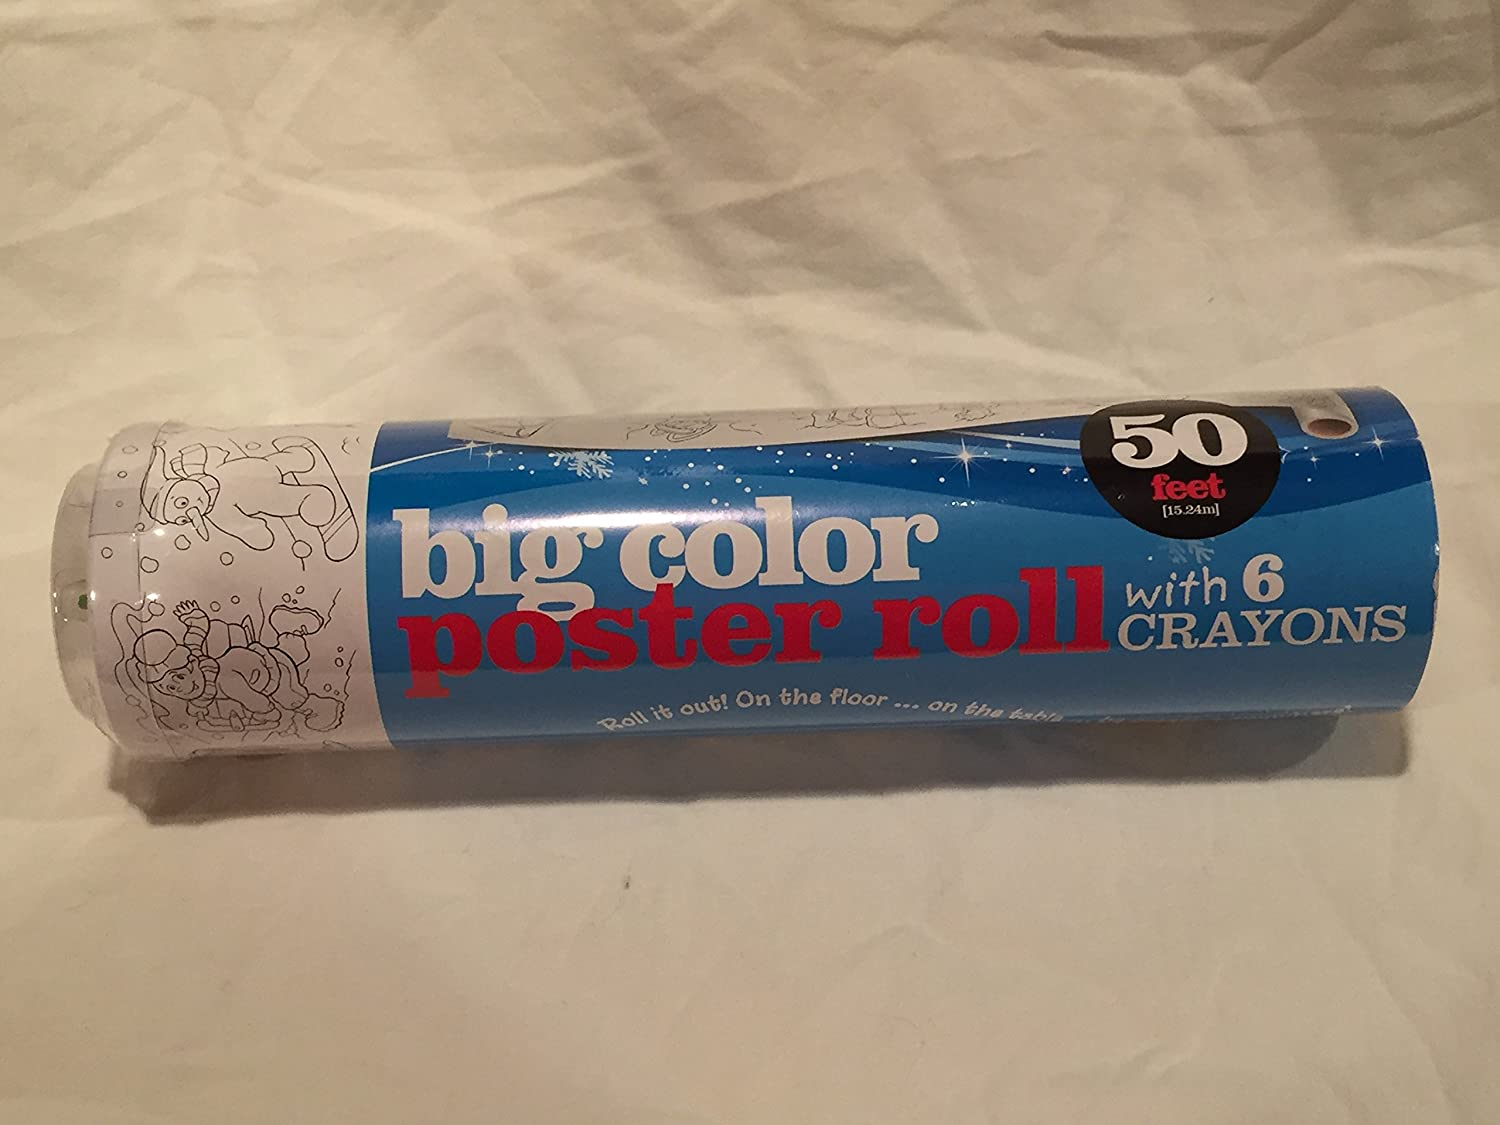 Big Color Let It Snow! Poster Roll 50 feet Long with 6 Crayons